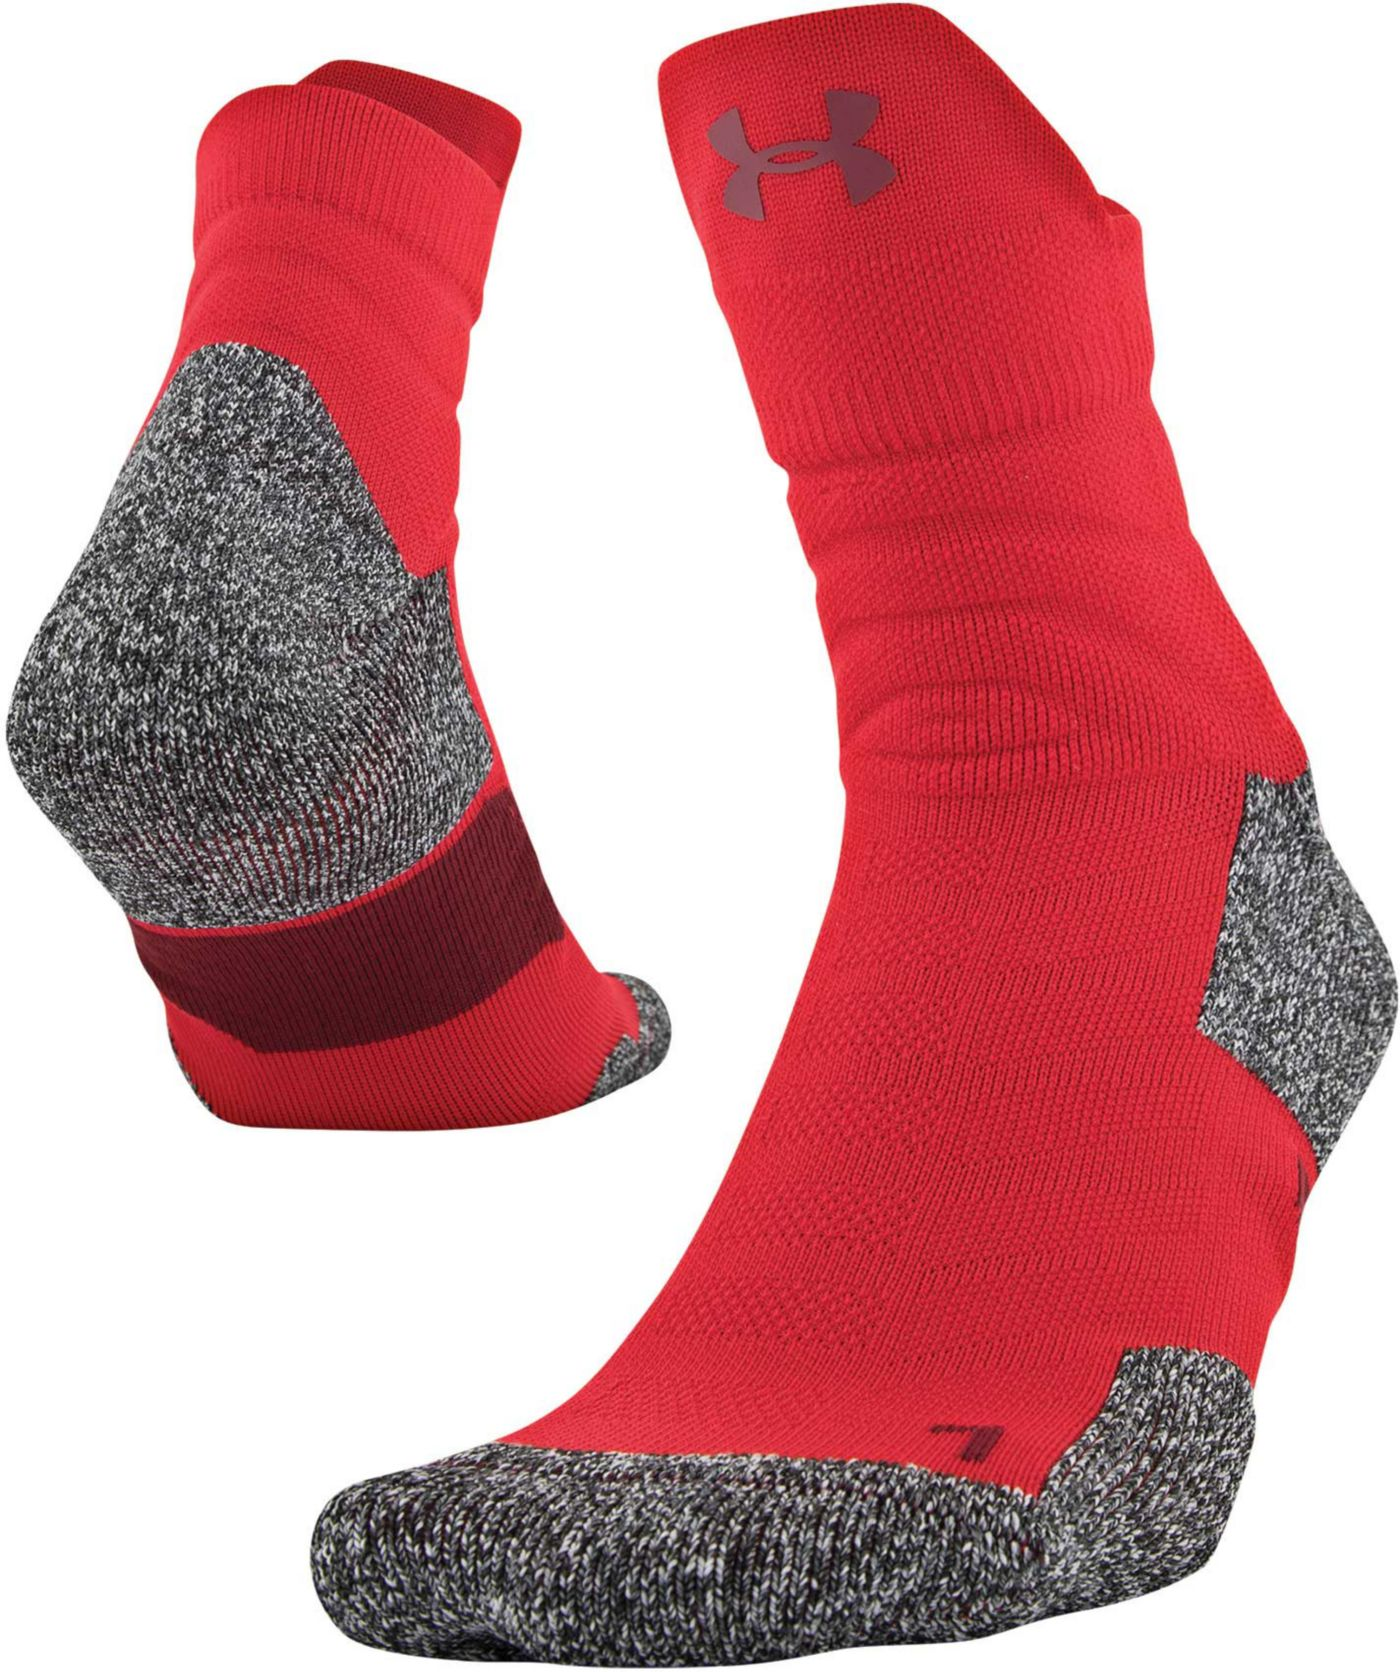 Under Armour Men's Drive Basketball Quarter Socks